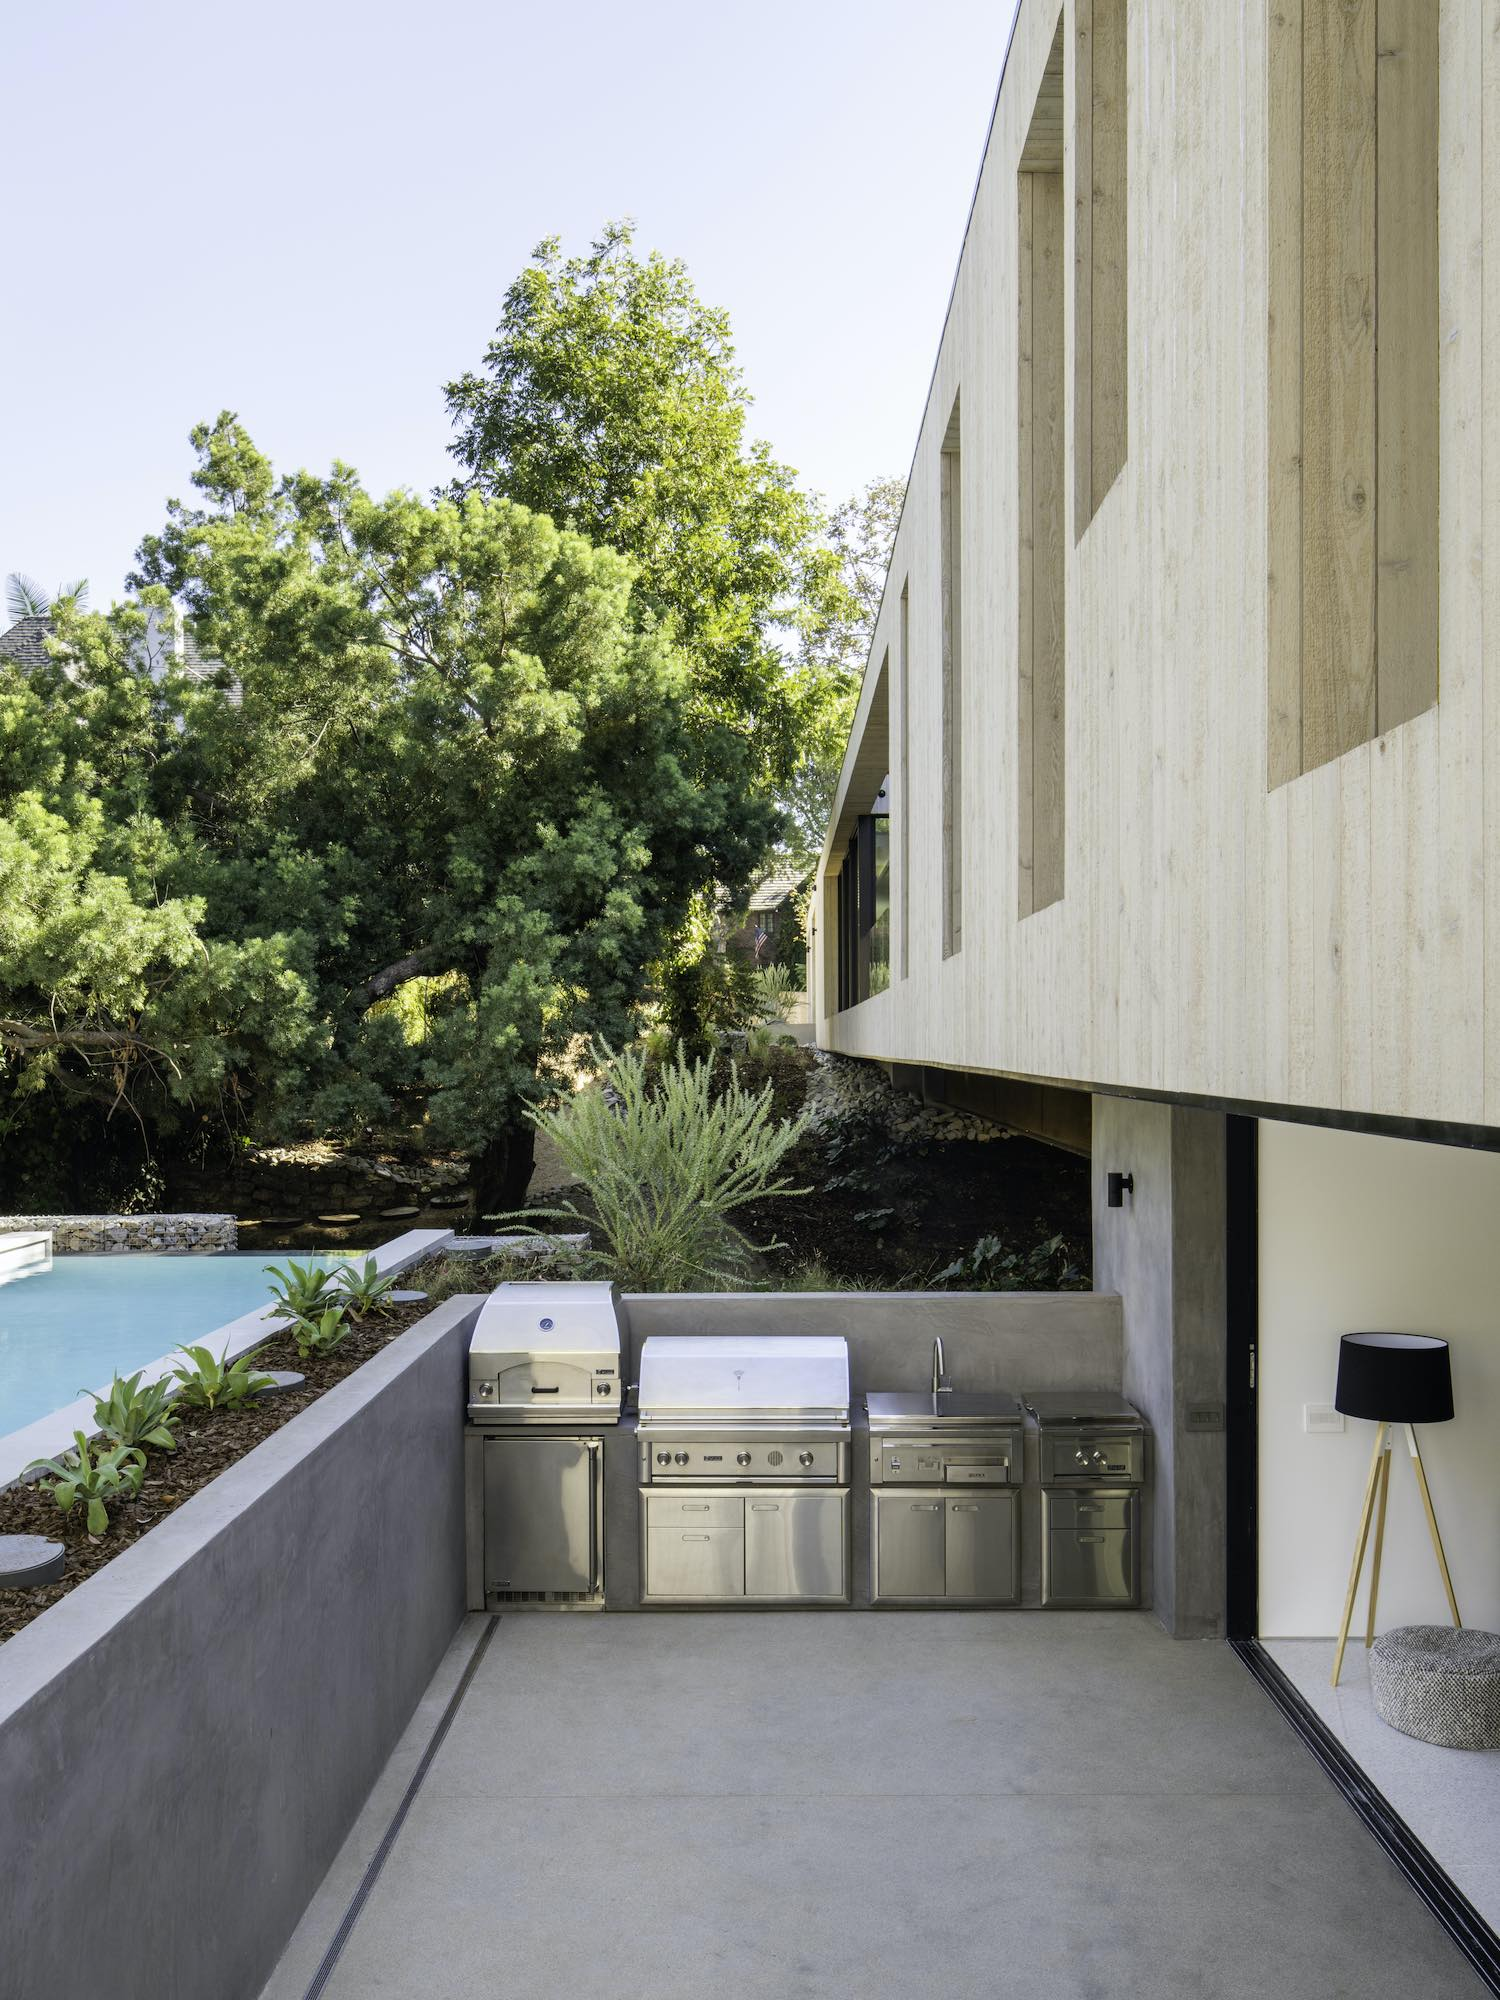 Bridge House in Los Angeles, California by Dan Brunn Architecture